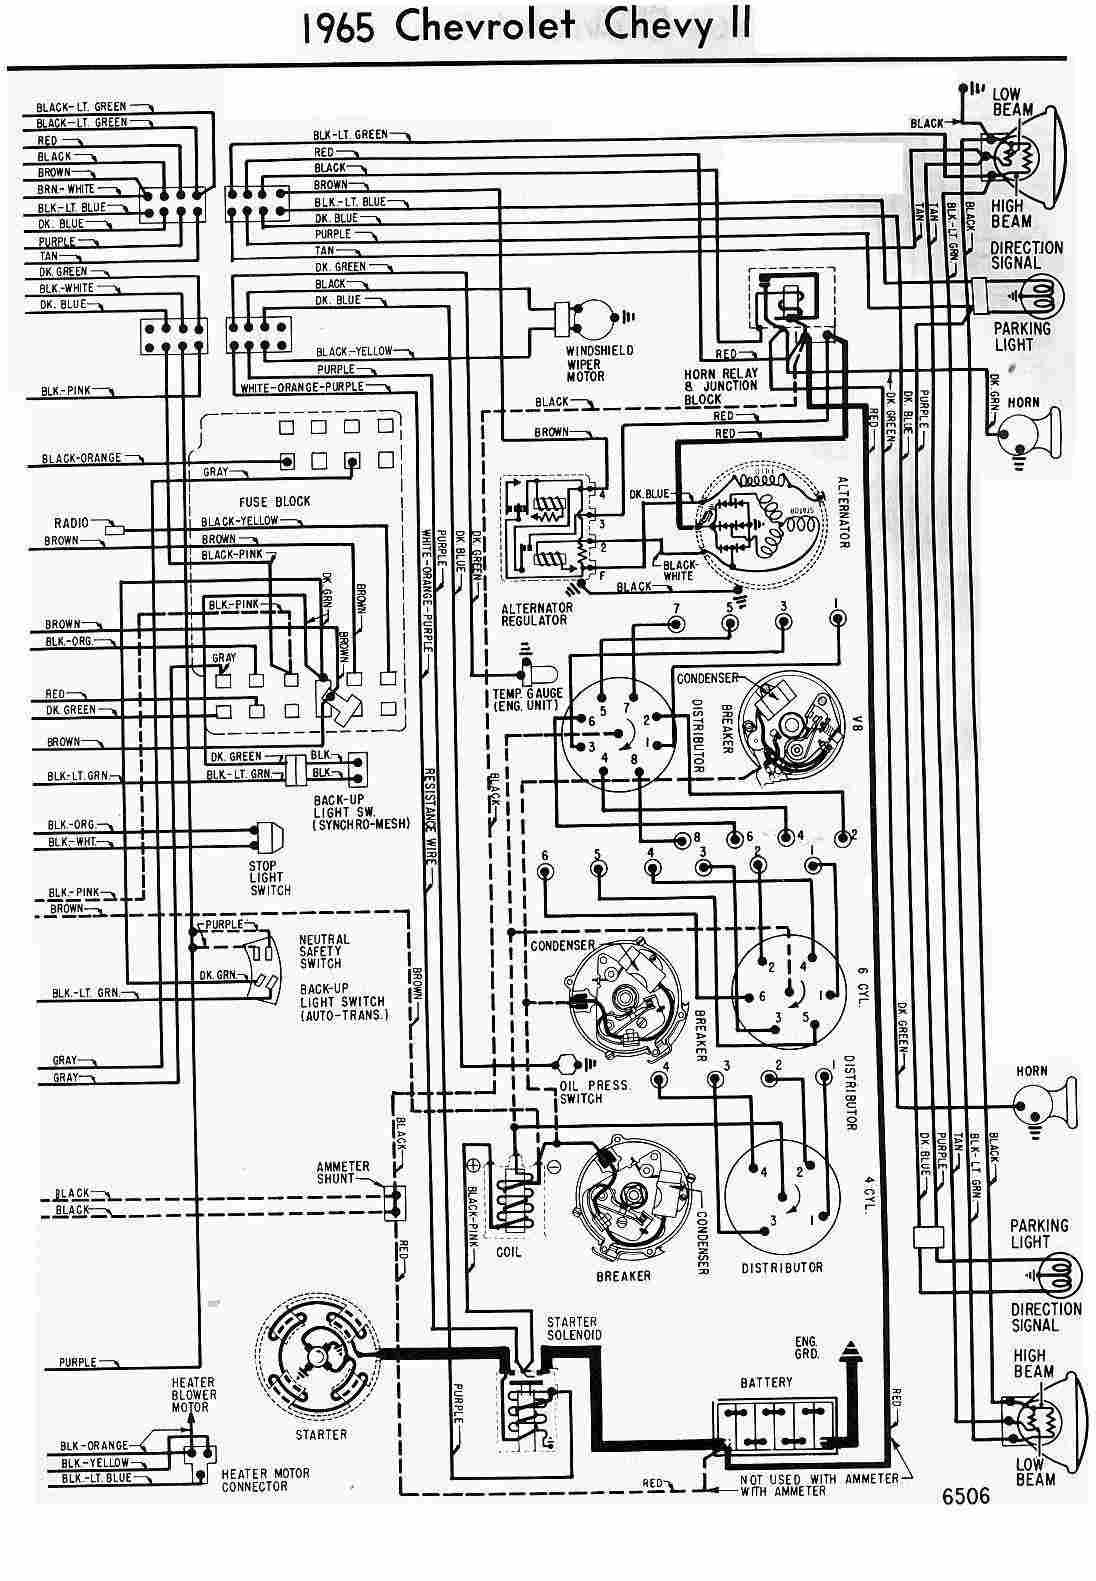 1966 Chevelle Engine Wiring Diagram Free Download Best Electrical Fuse Box 66 Library Rh 94 Codingcommunity De 1967 Chevy